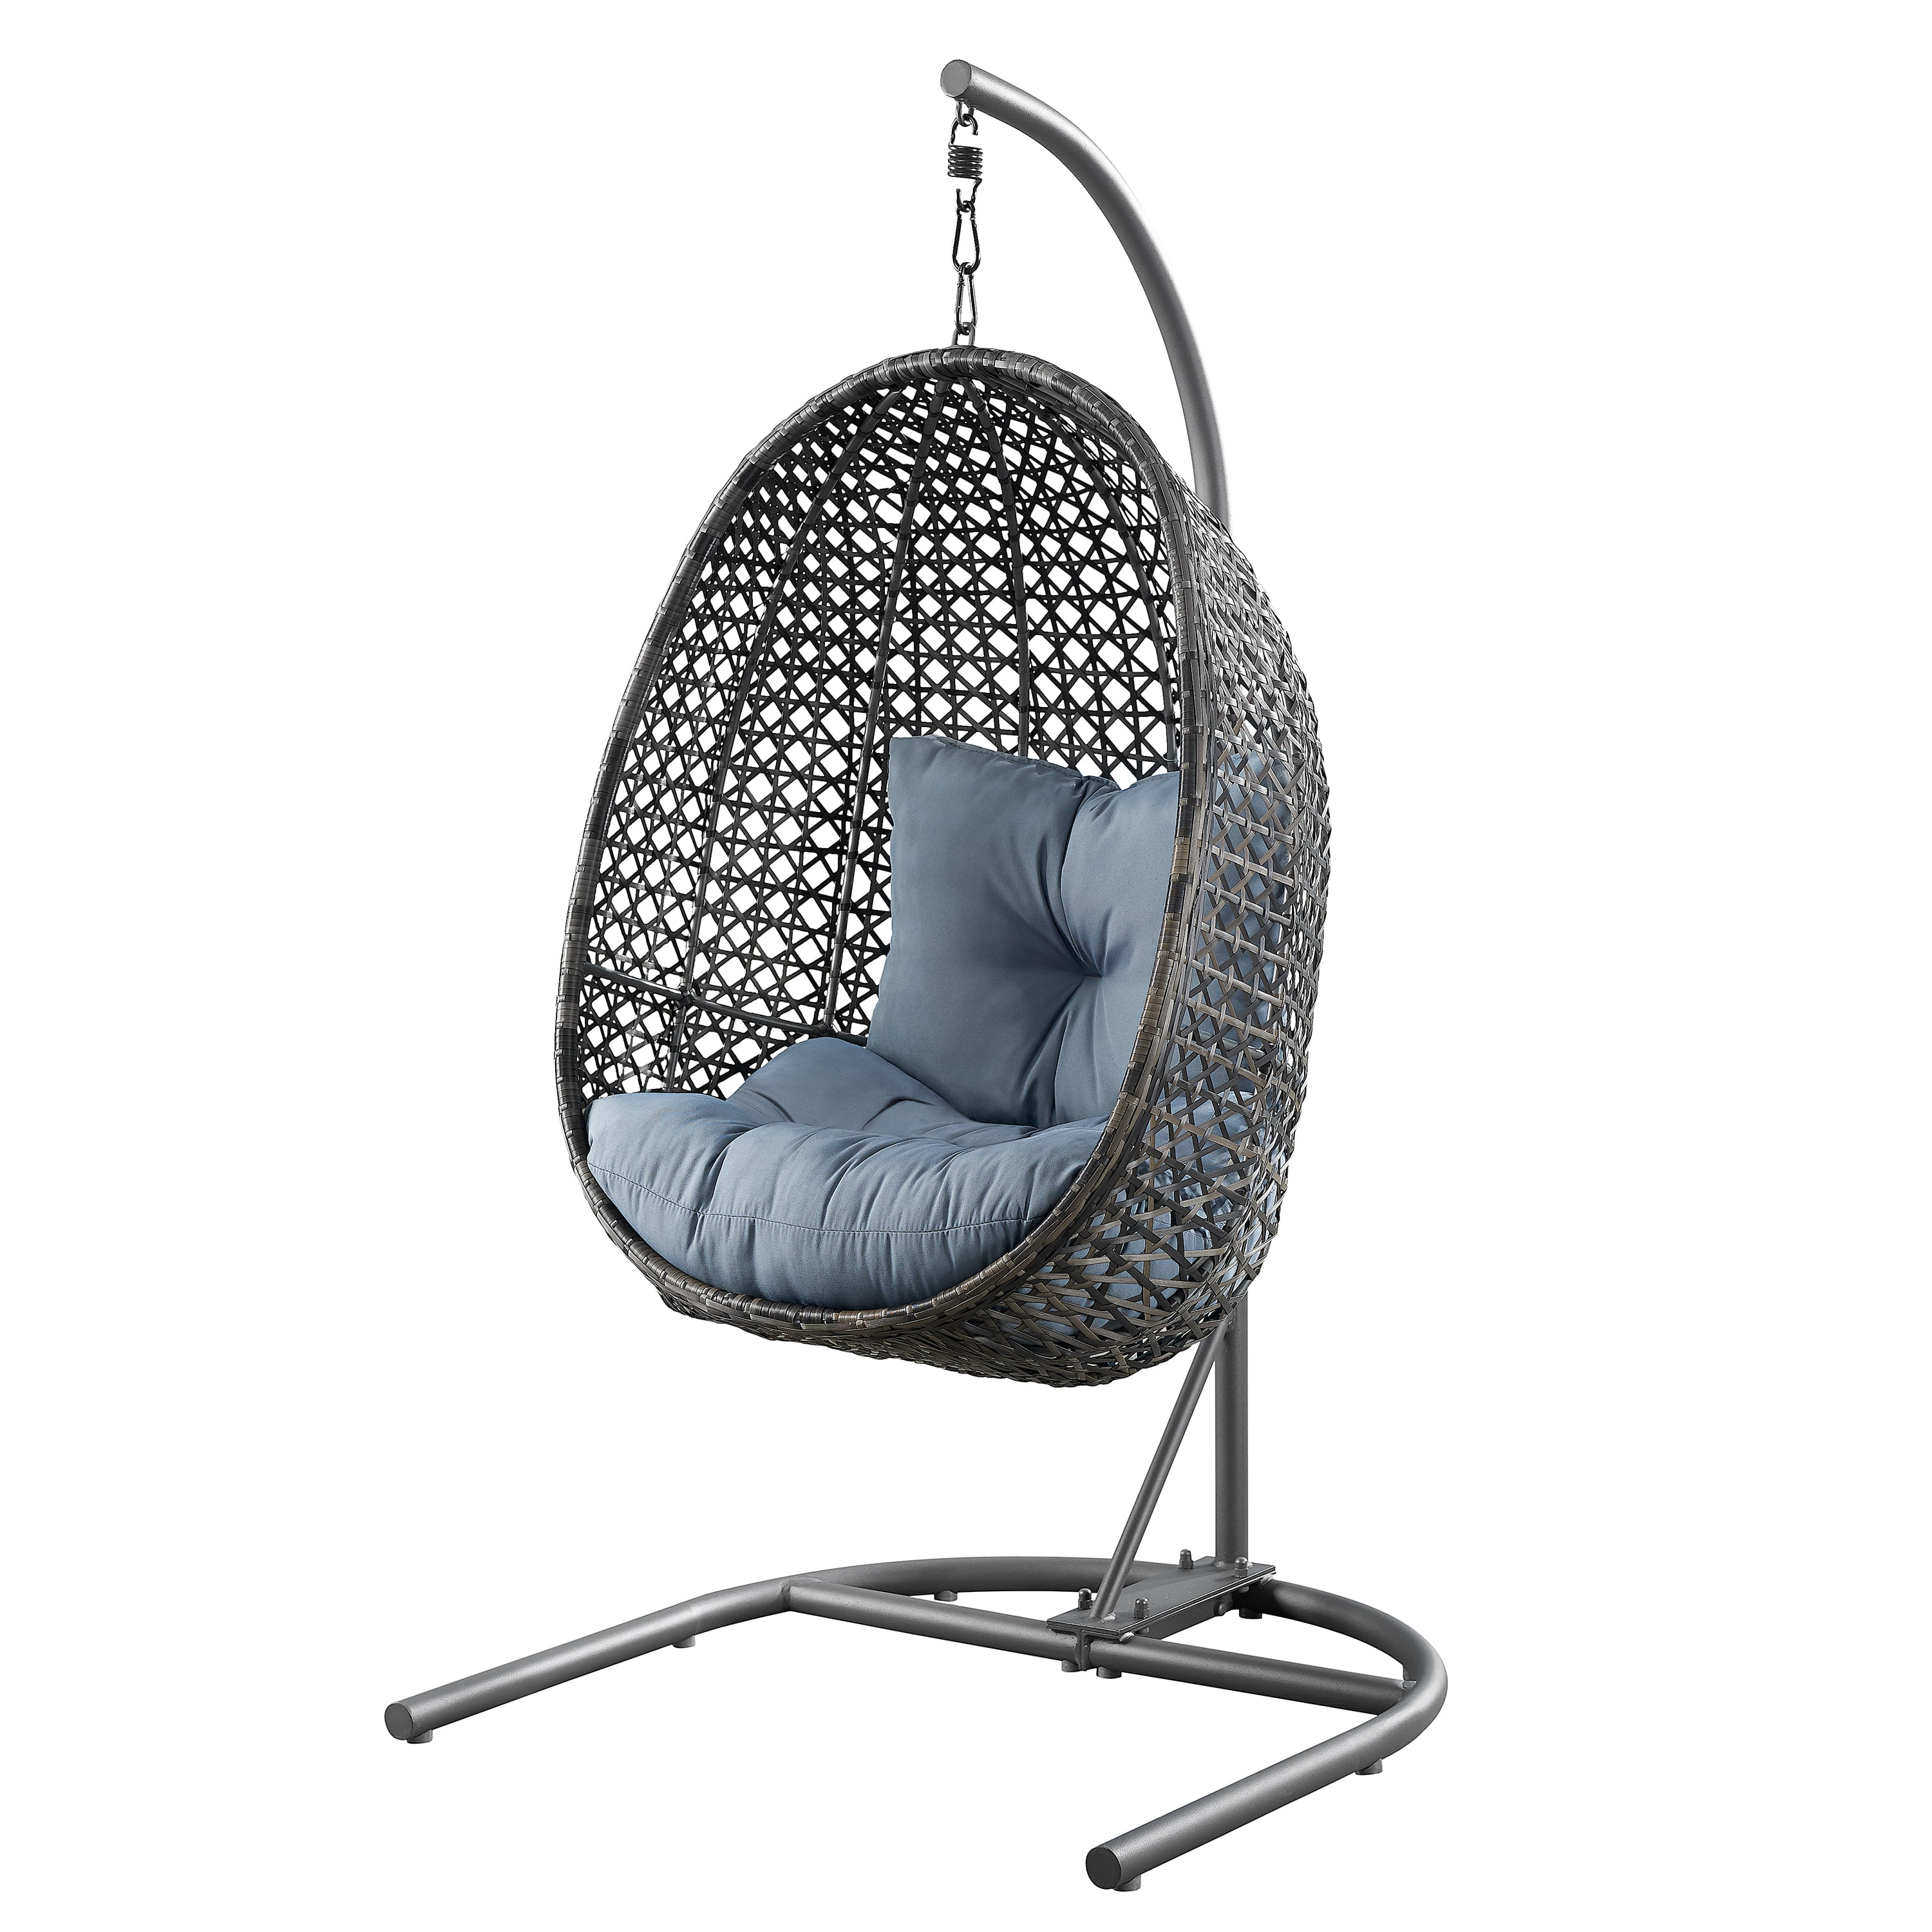 Better Homes & Gardens Lantis Patio Wicker Hanging Chair with Stand and Cushion, Multiple Colors